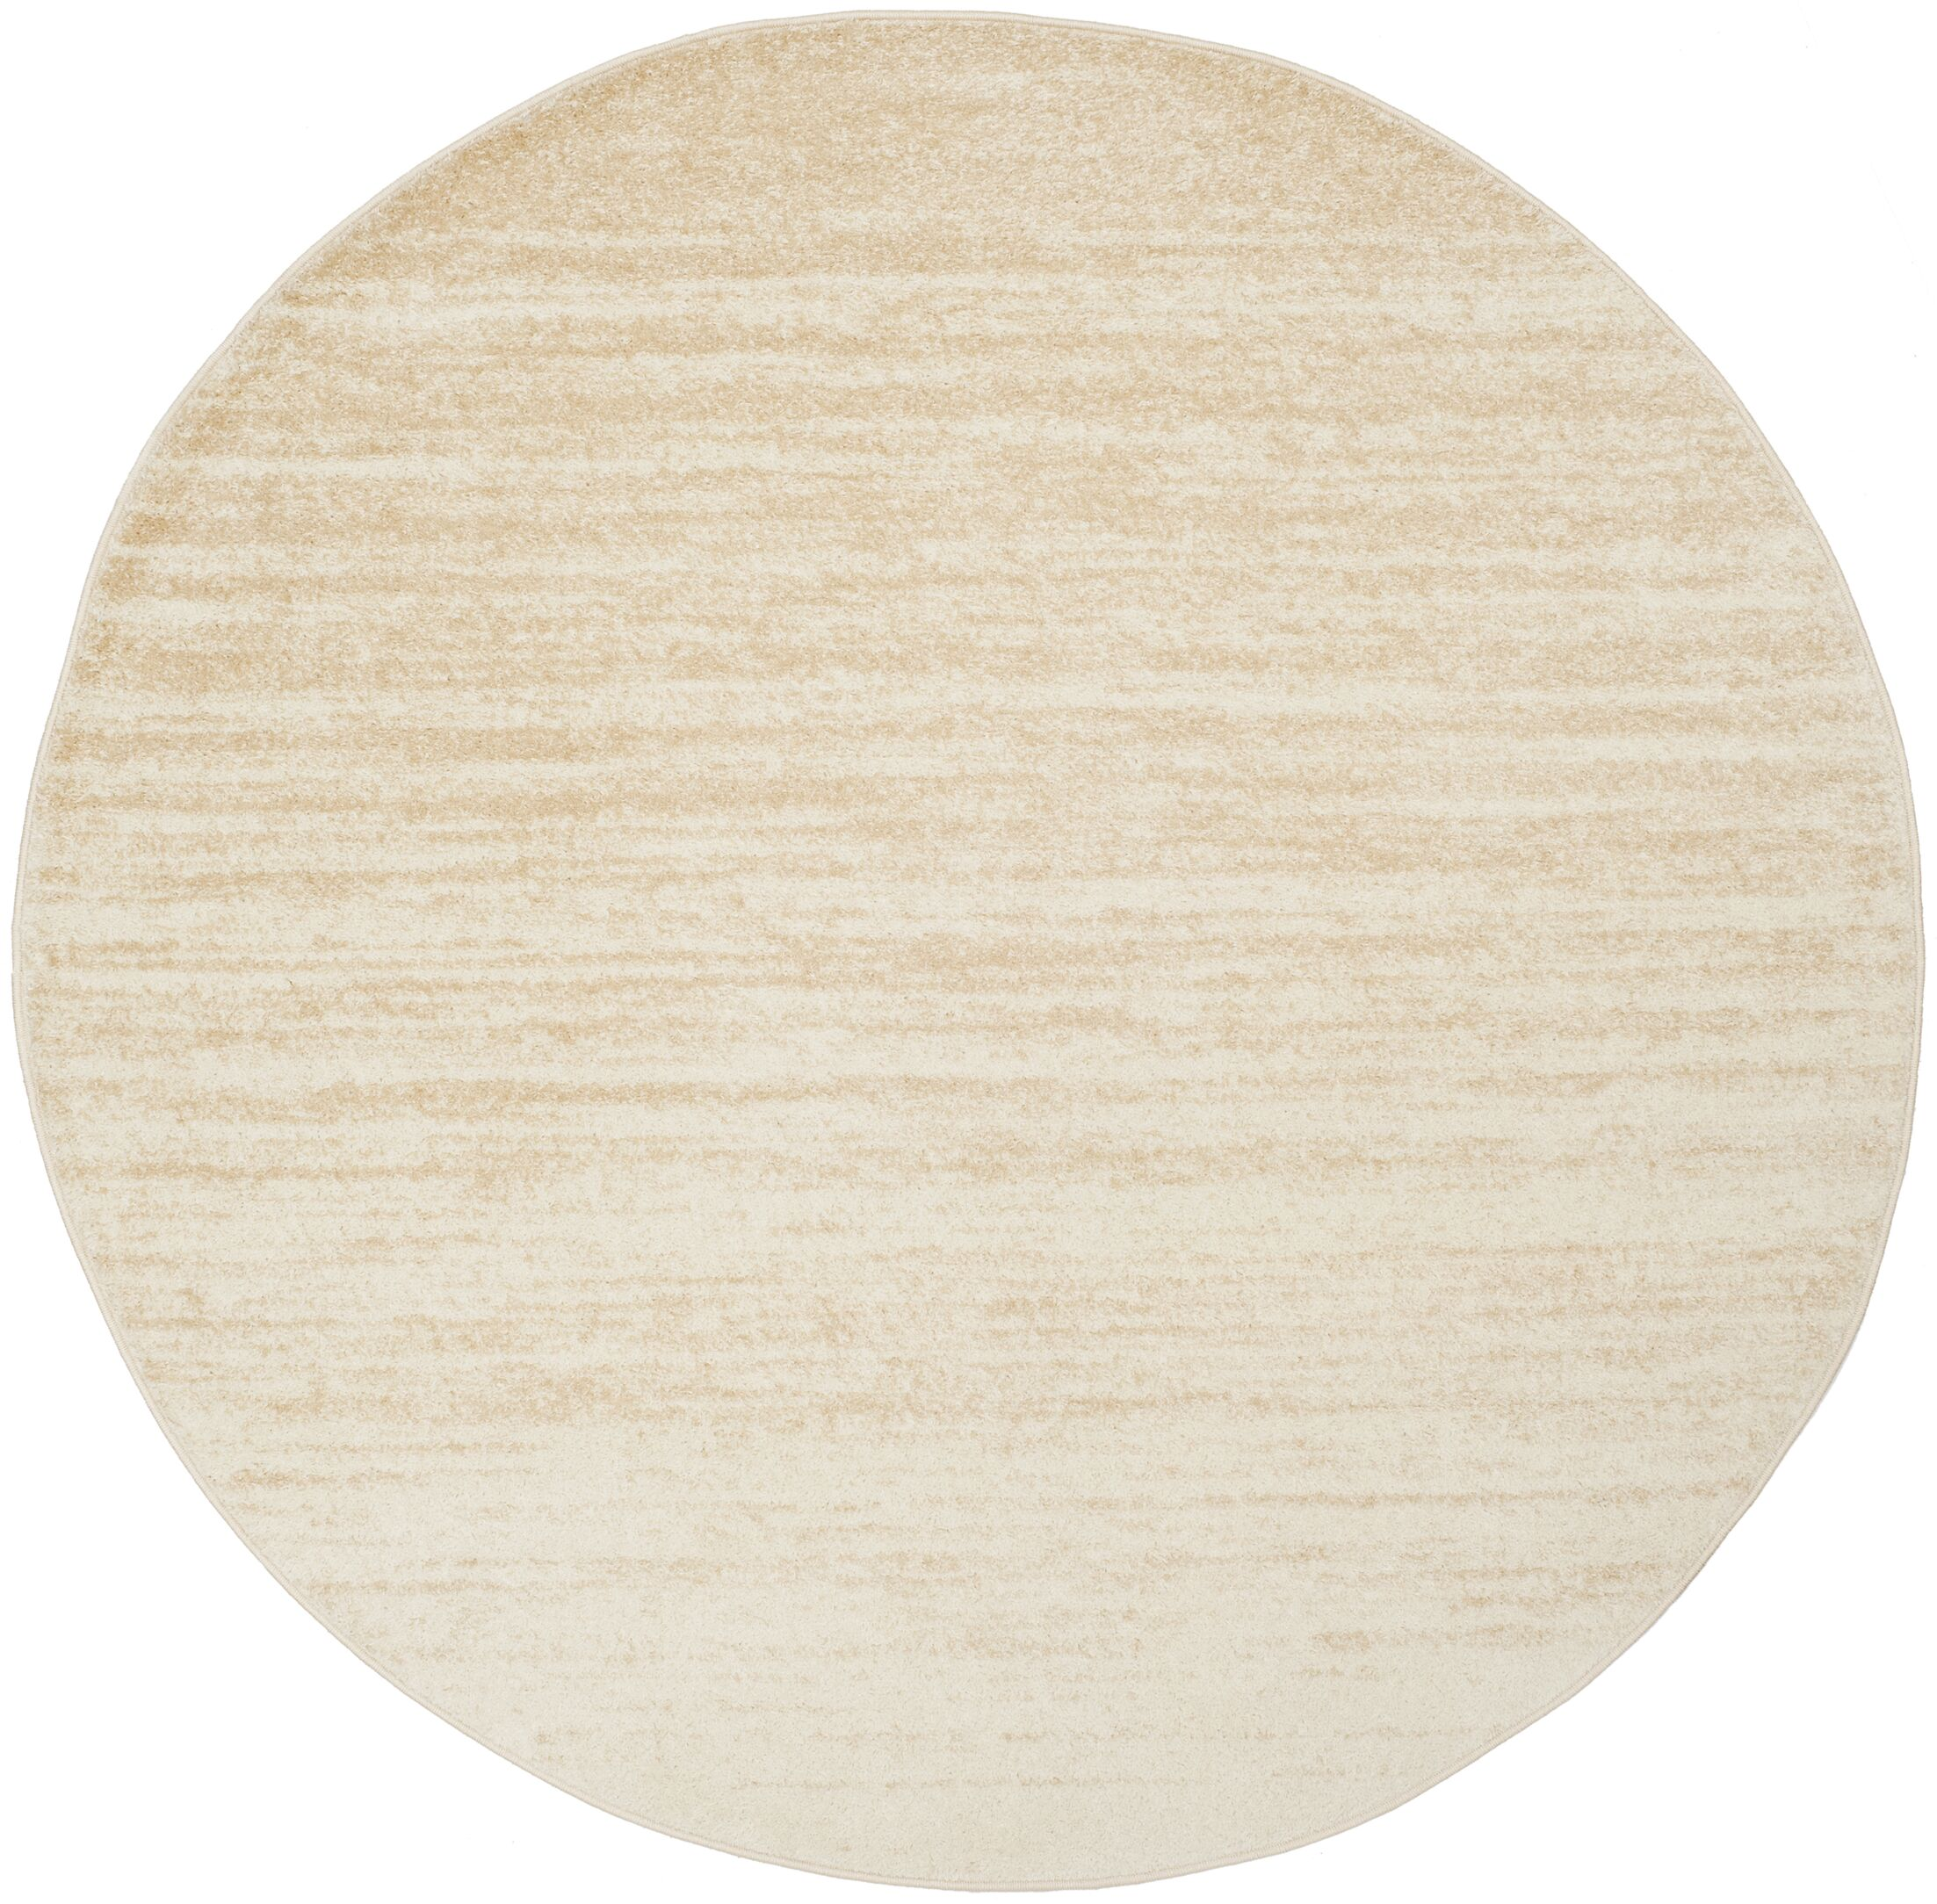 Connie Champagne/Cream Area Rug Rug Size: Round 6'